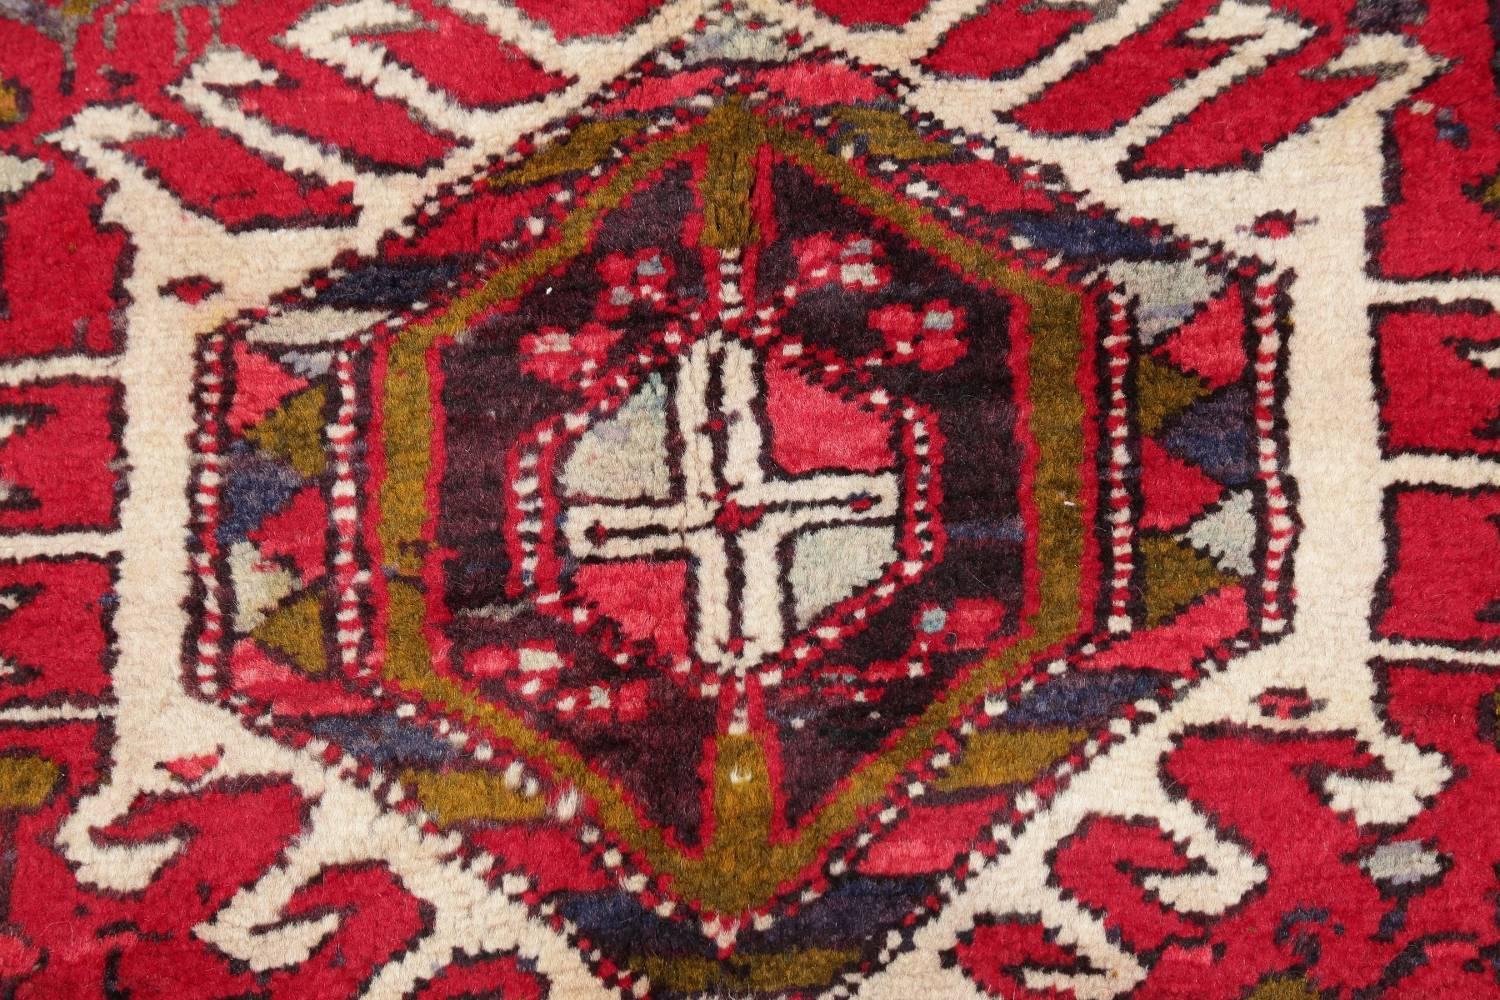 One-of-a-Kind Red Geometric Heriz Persian Hand-Knotted 4x13 Wool Runner Rug image 9